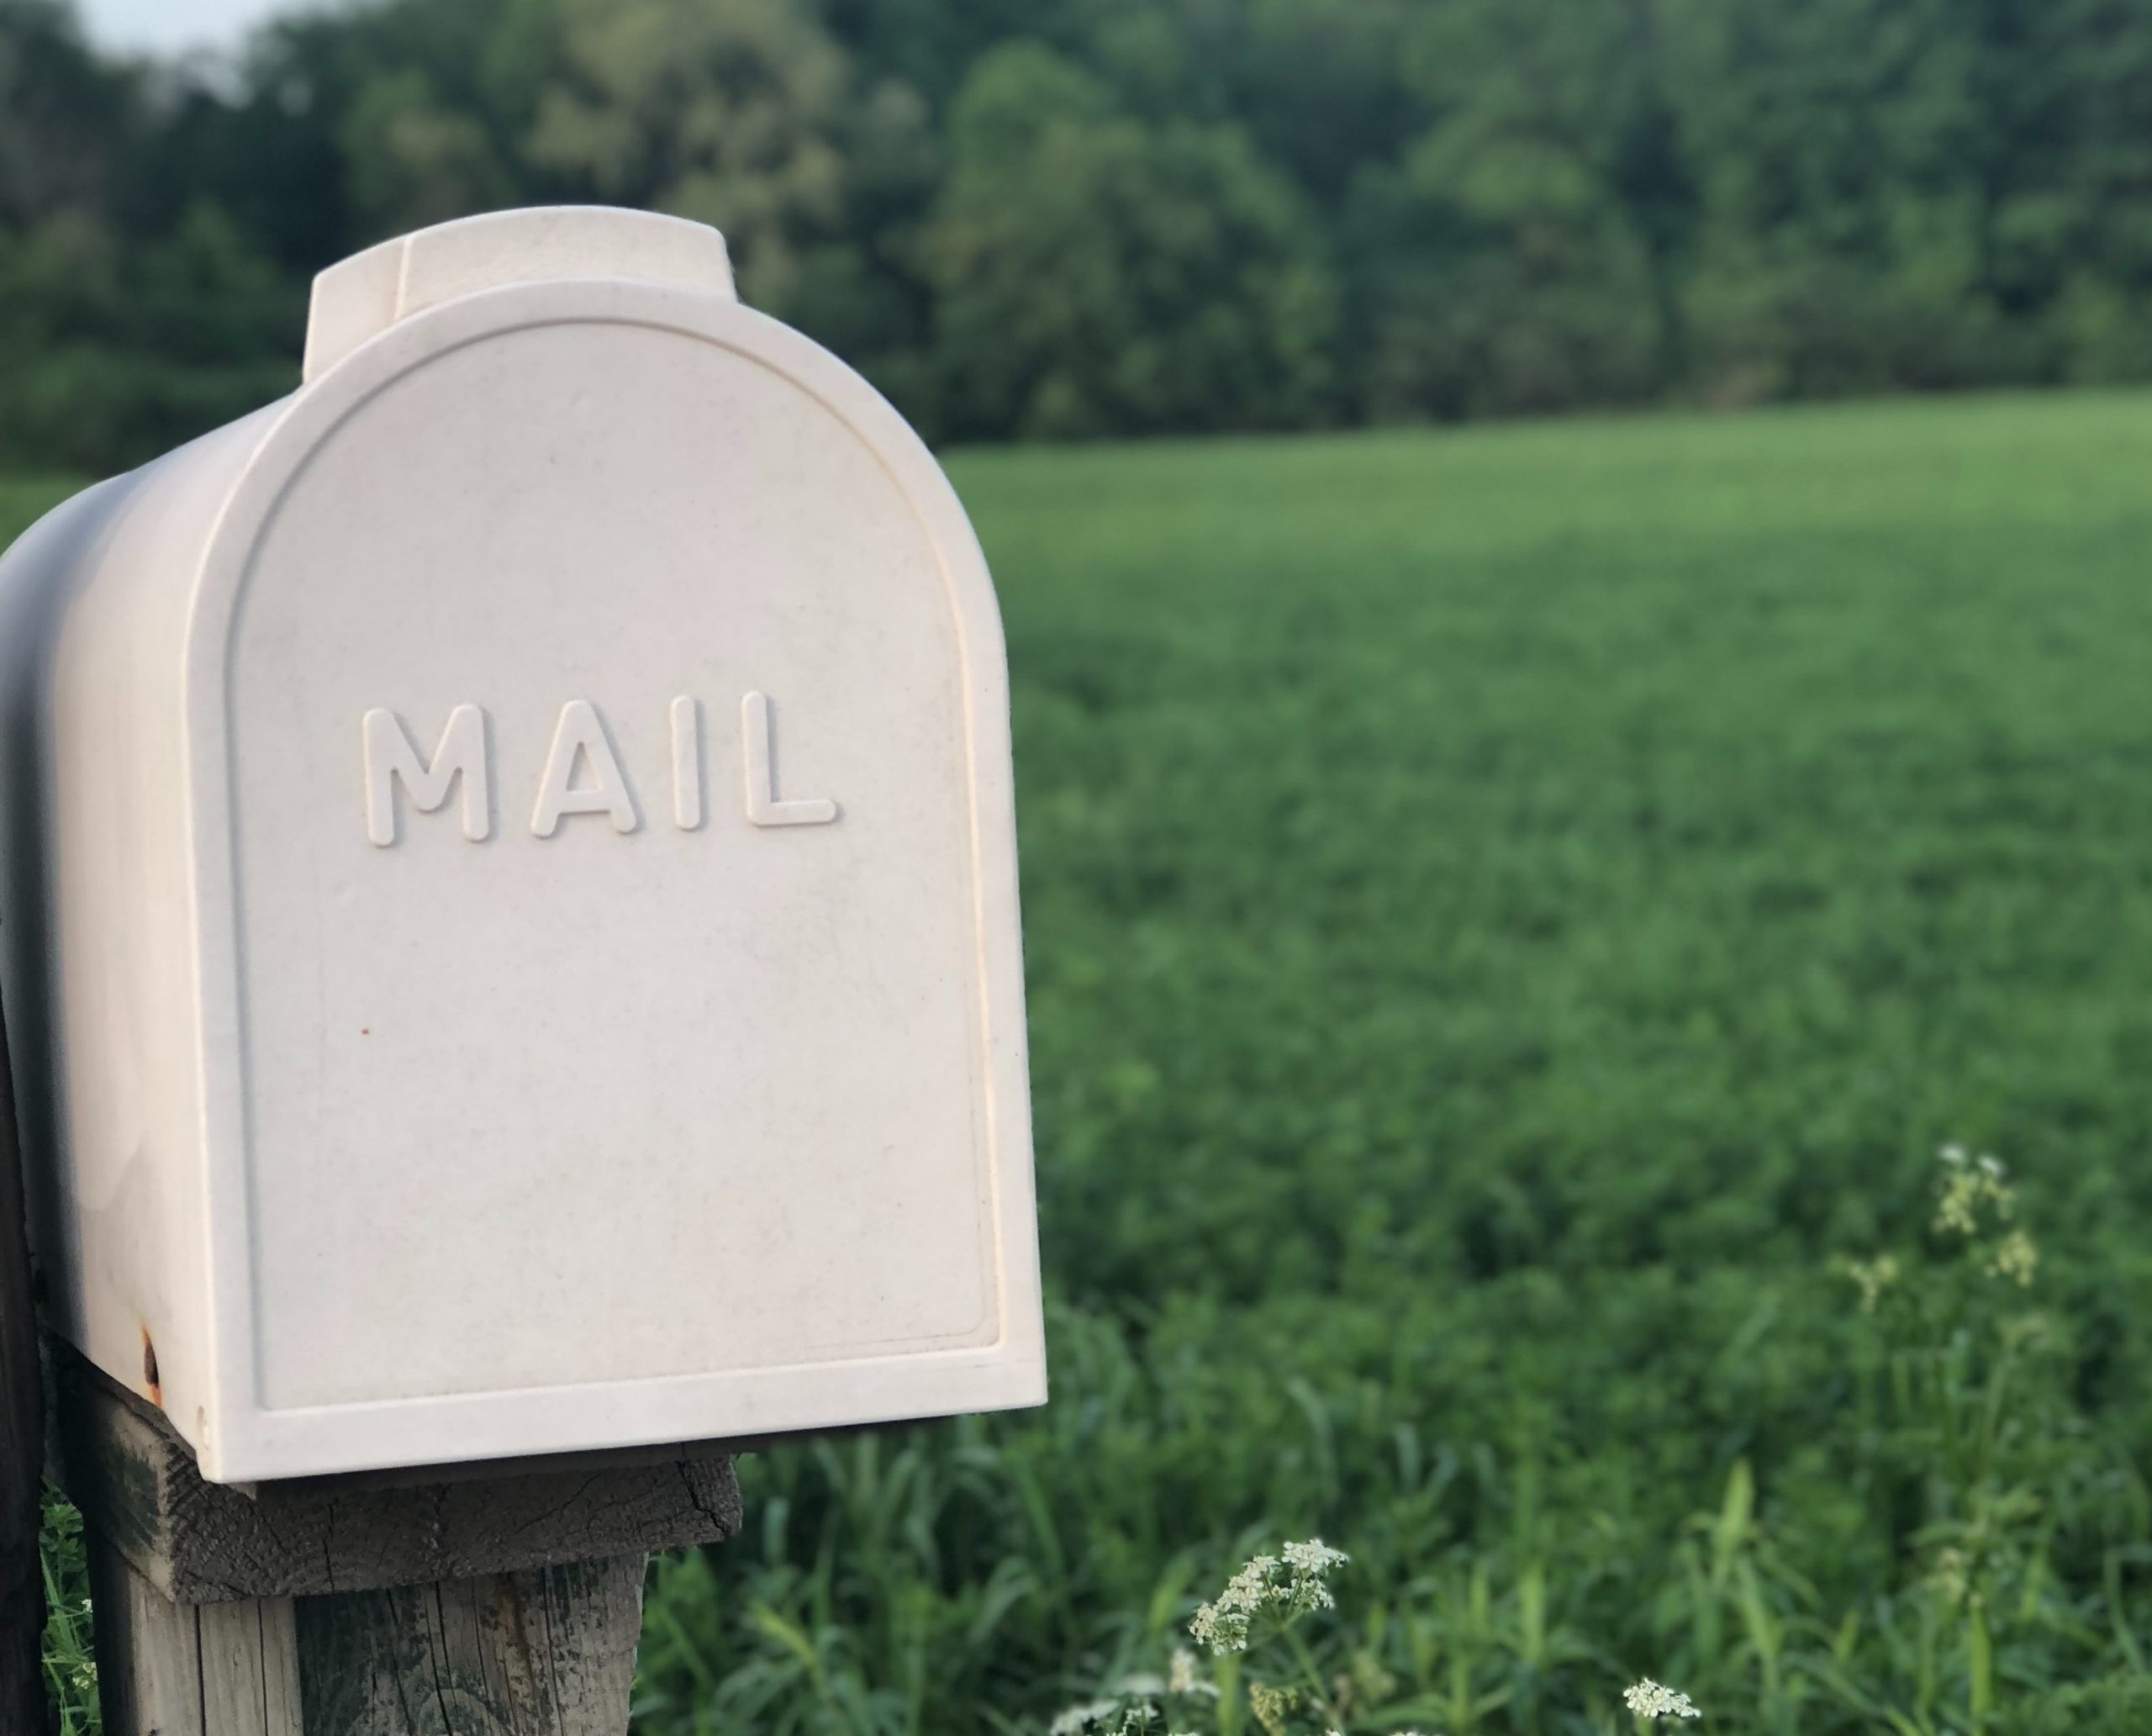 Police: Wear pants to check the mail – final warning